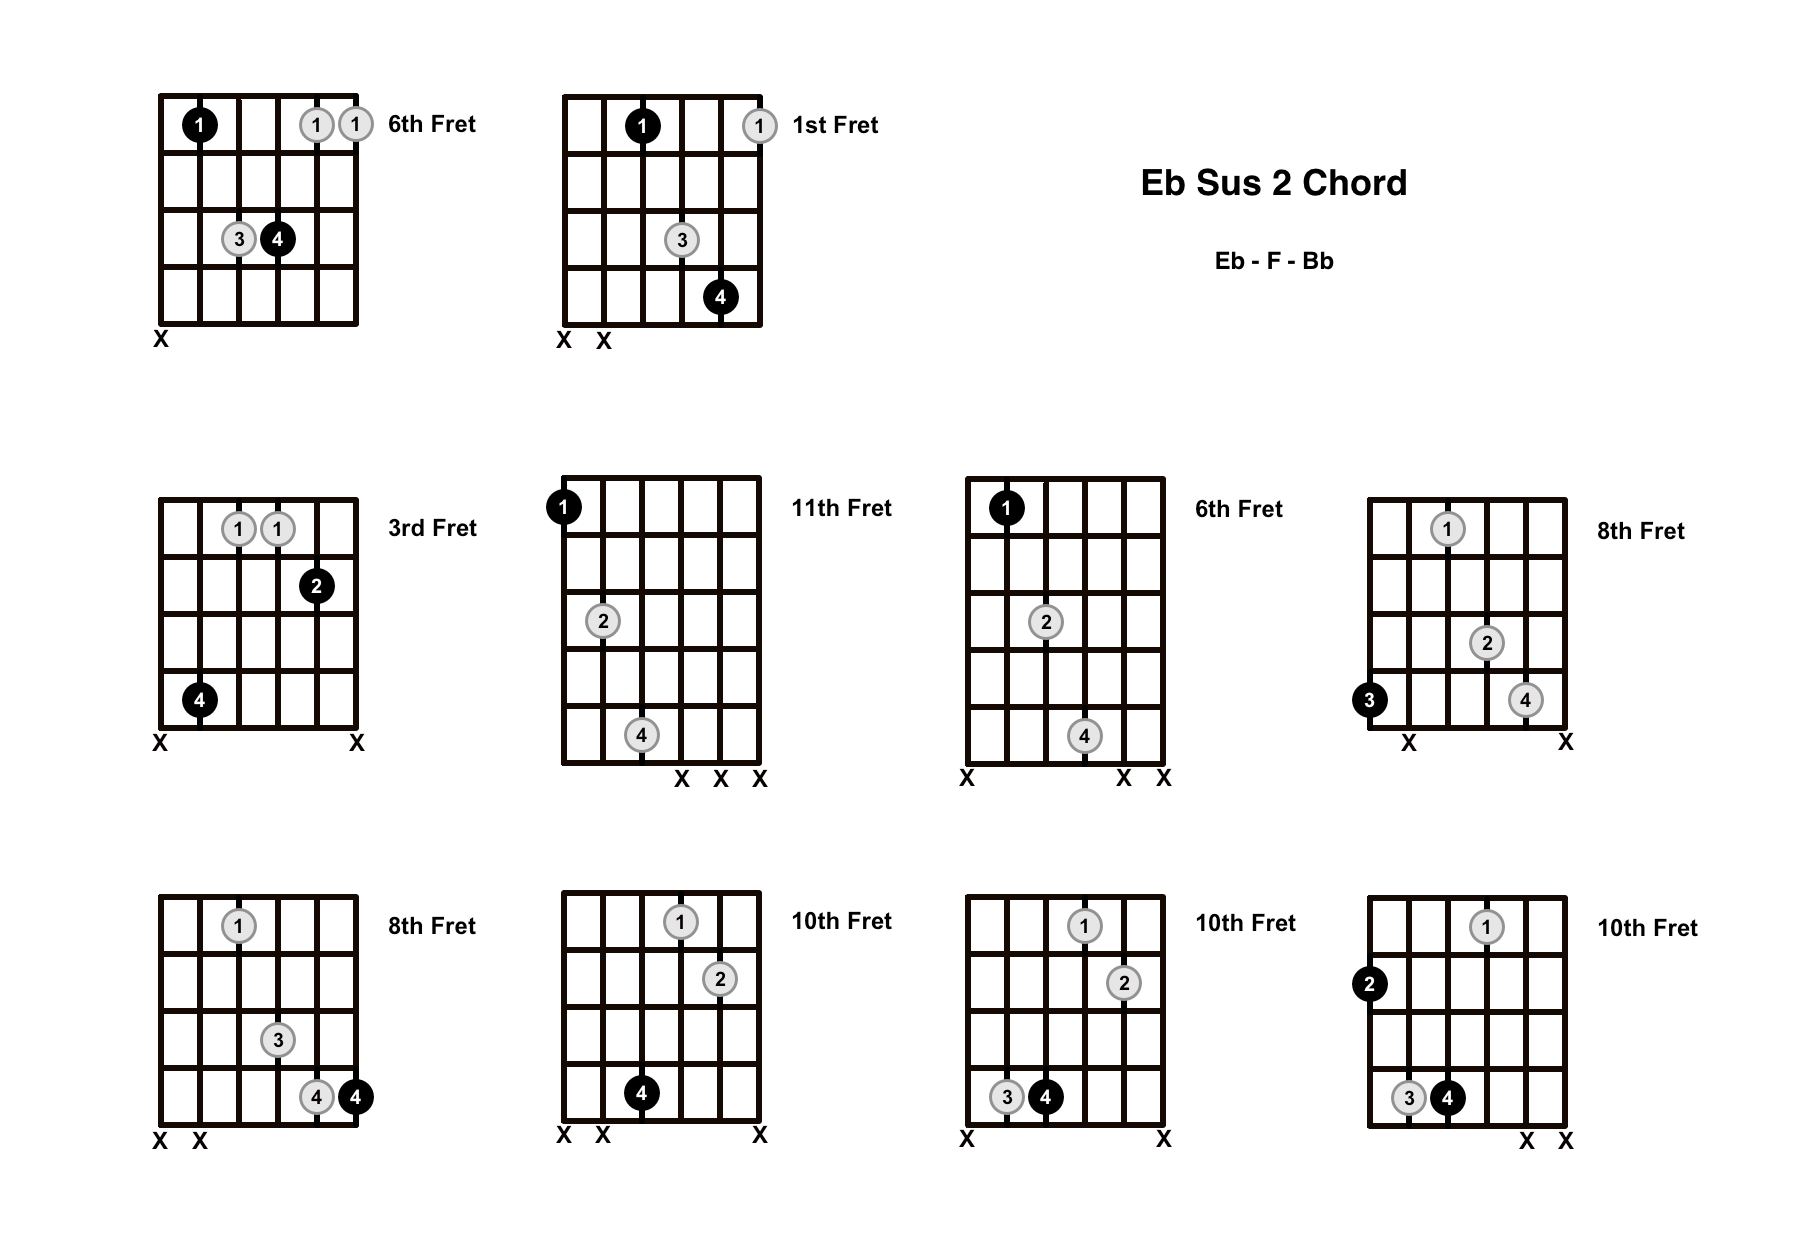 Eb Sus 2 Chord On The Guitar (E Flat Suspended 2) – Diagrams, Finger Positions and Theory